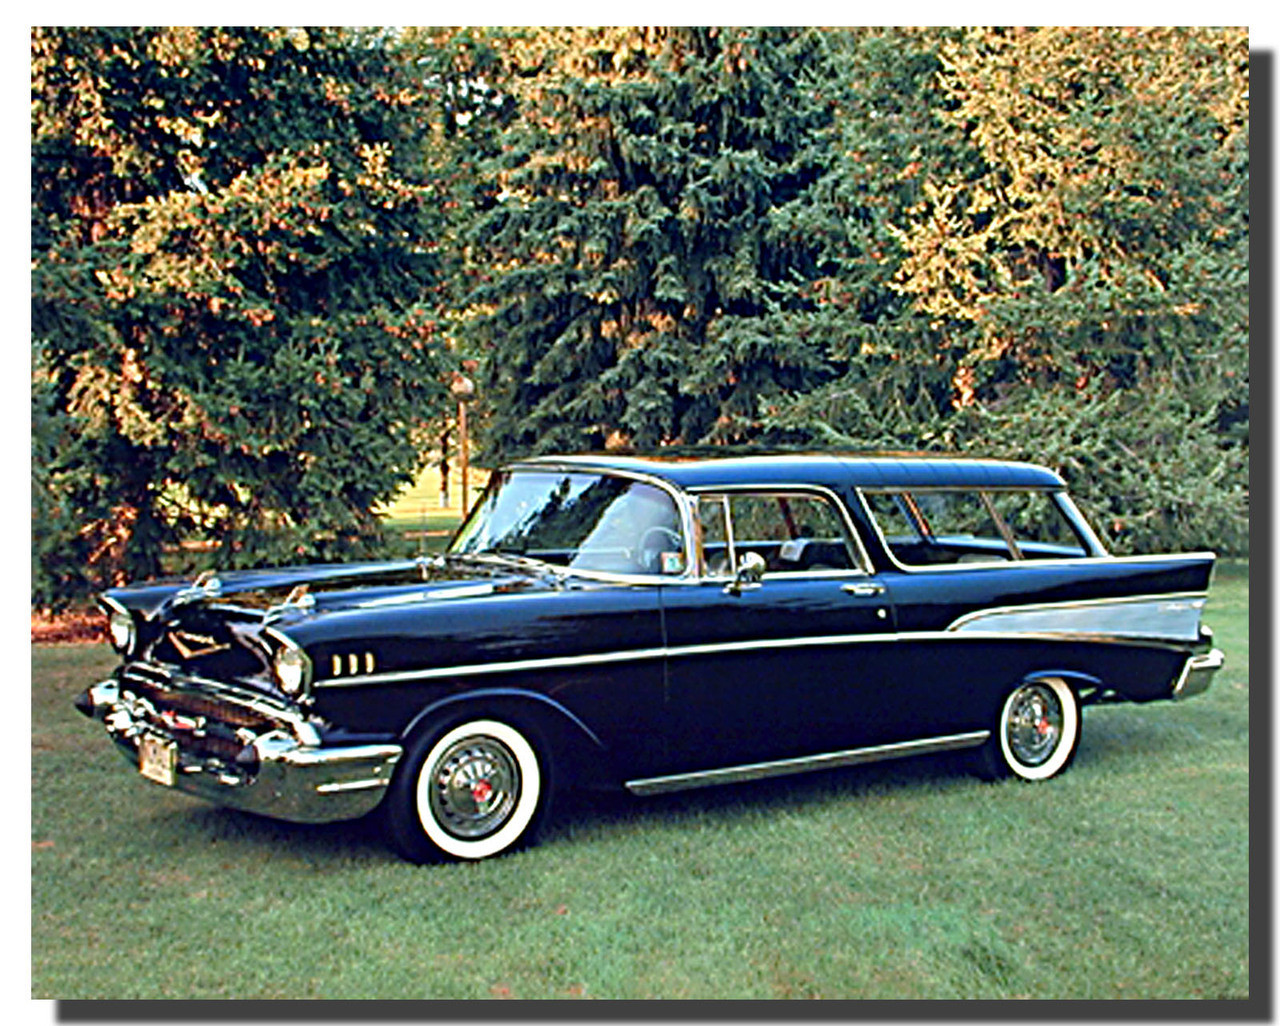 57 Chevy Nomad Bel Air Car Poster | Car Posters | Automotive Posters